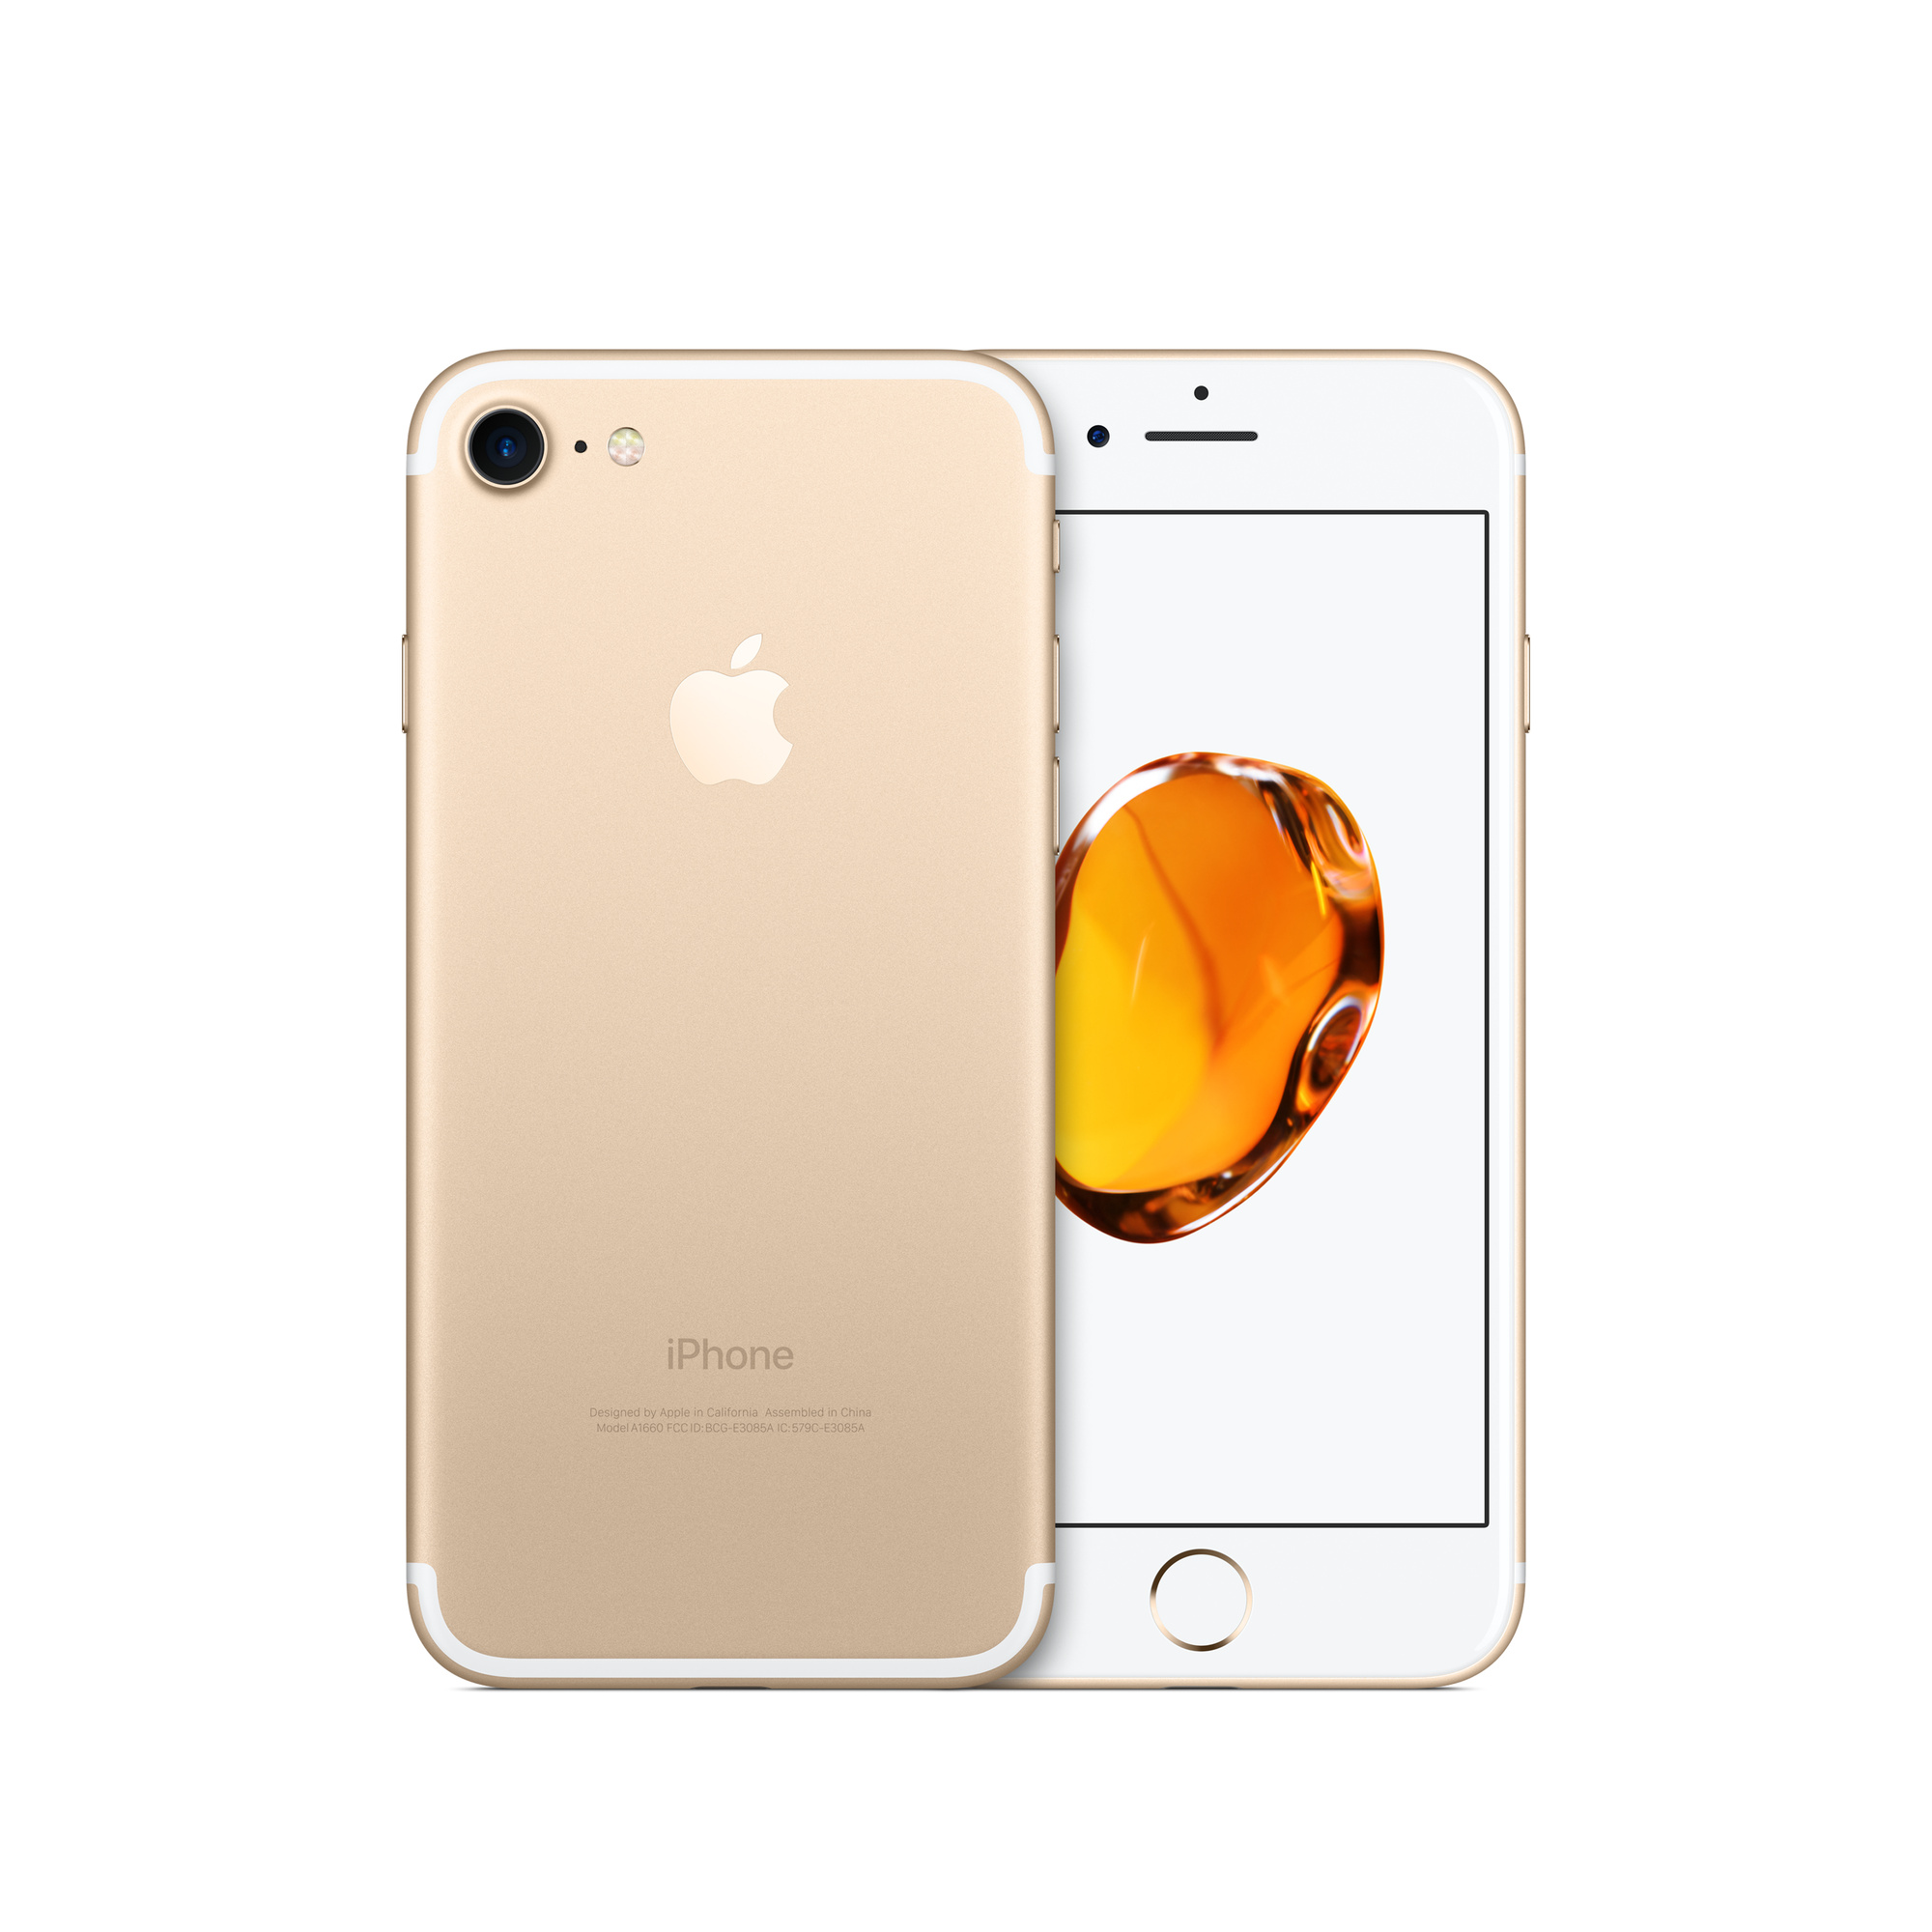 Refurbished iPhone 7 128GB - Gold (Unlocked)